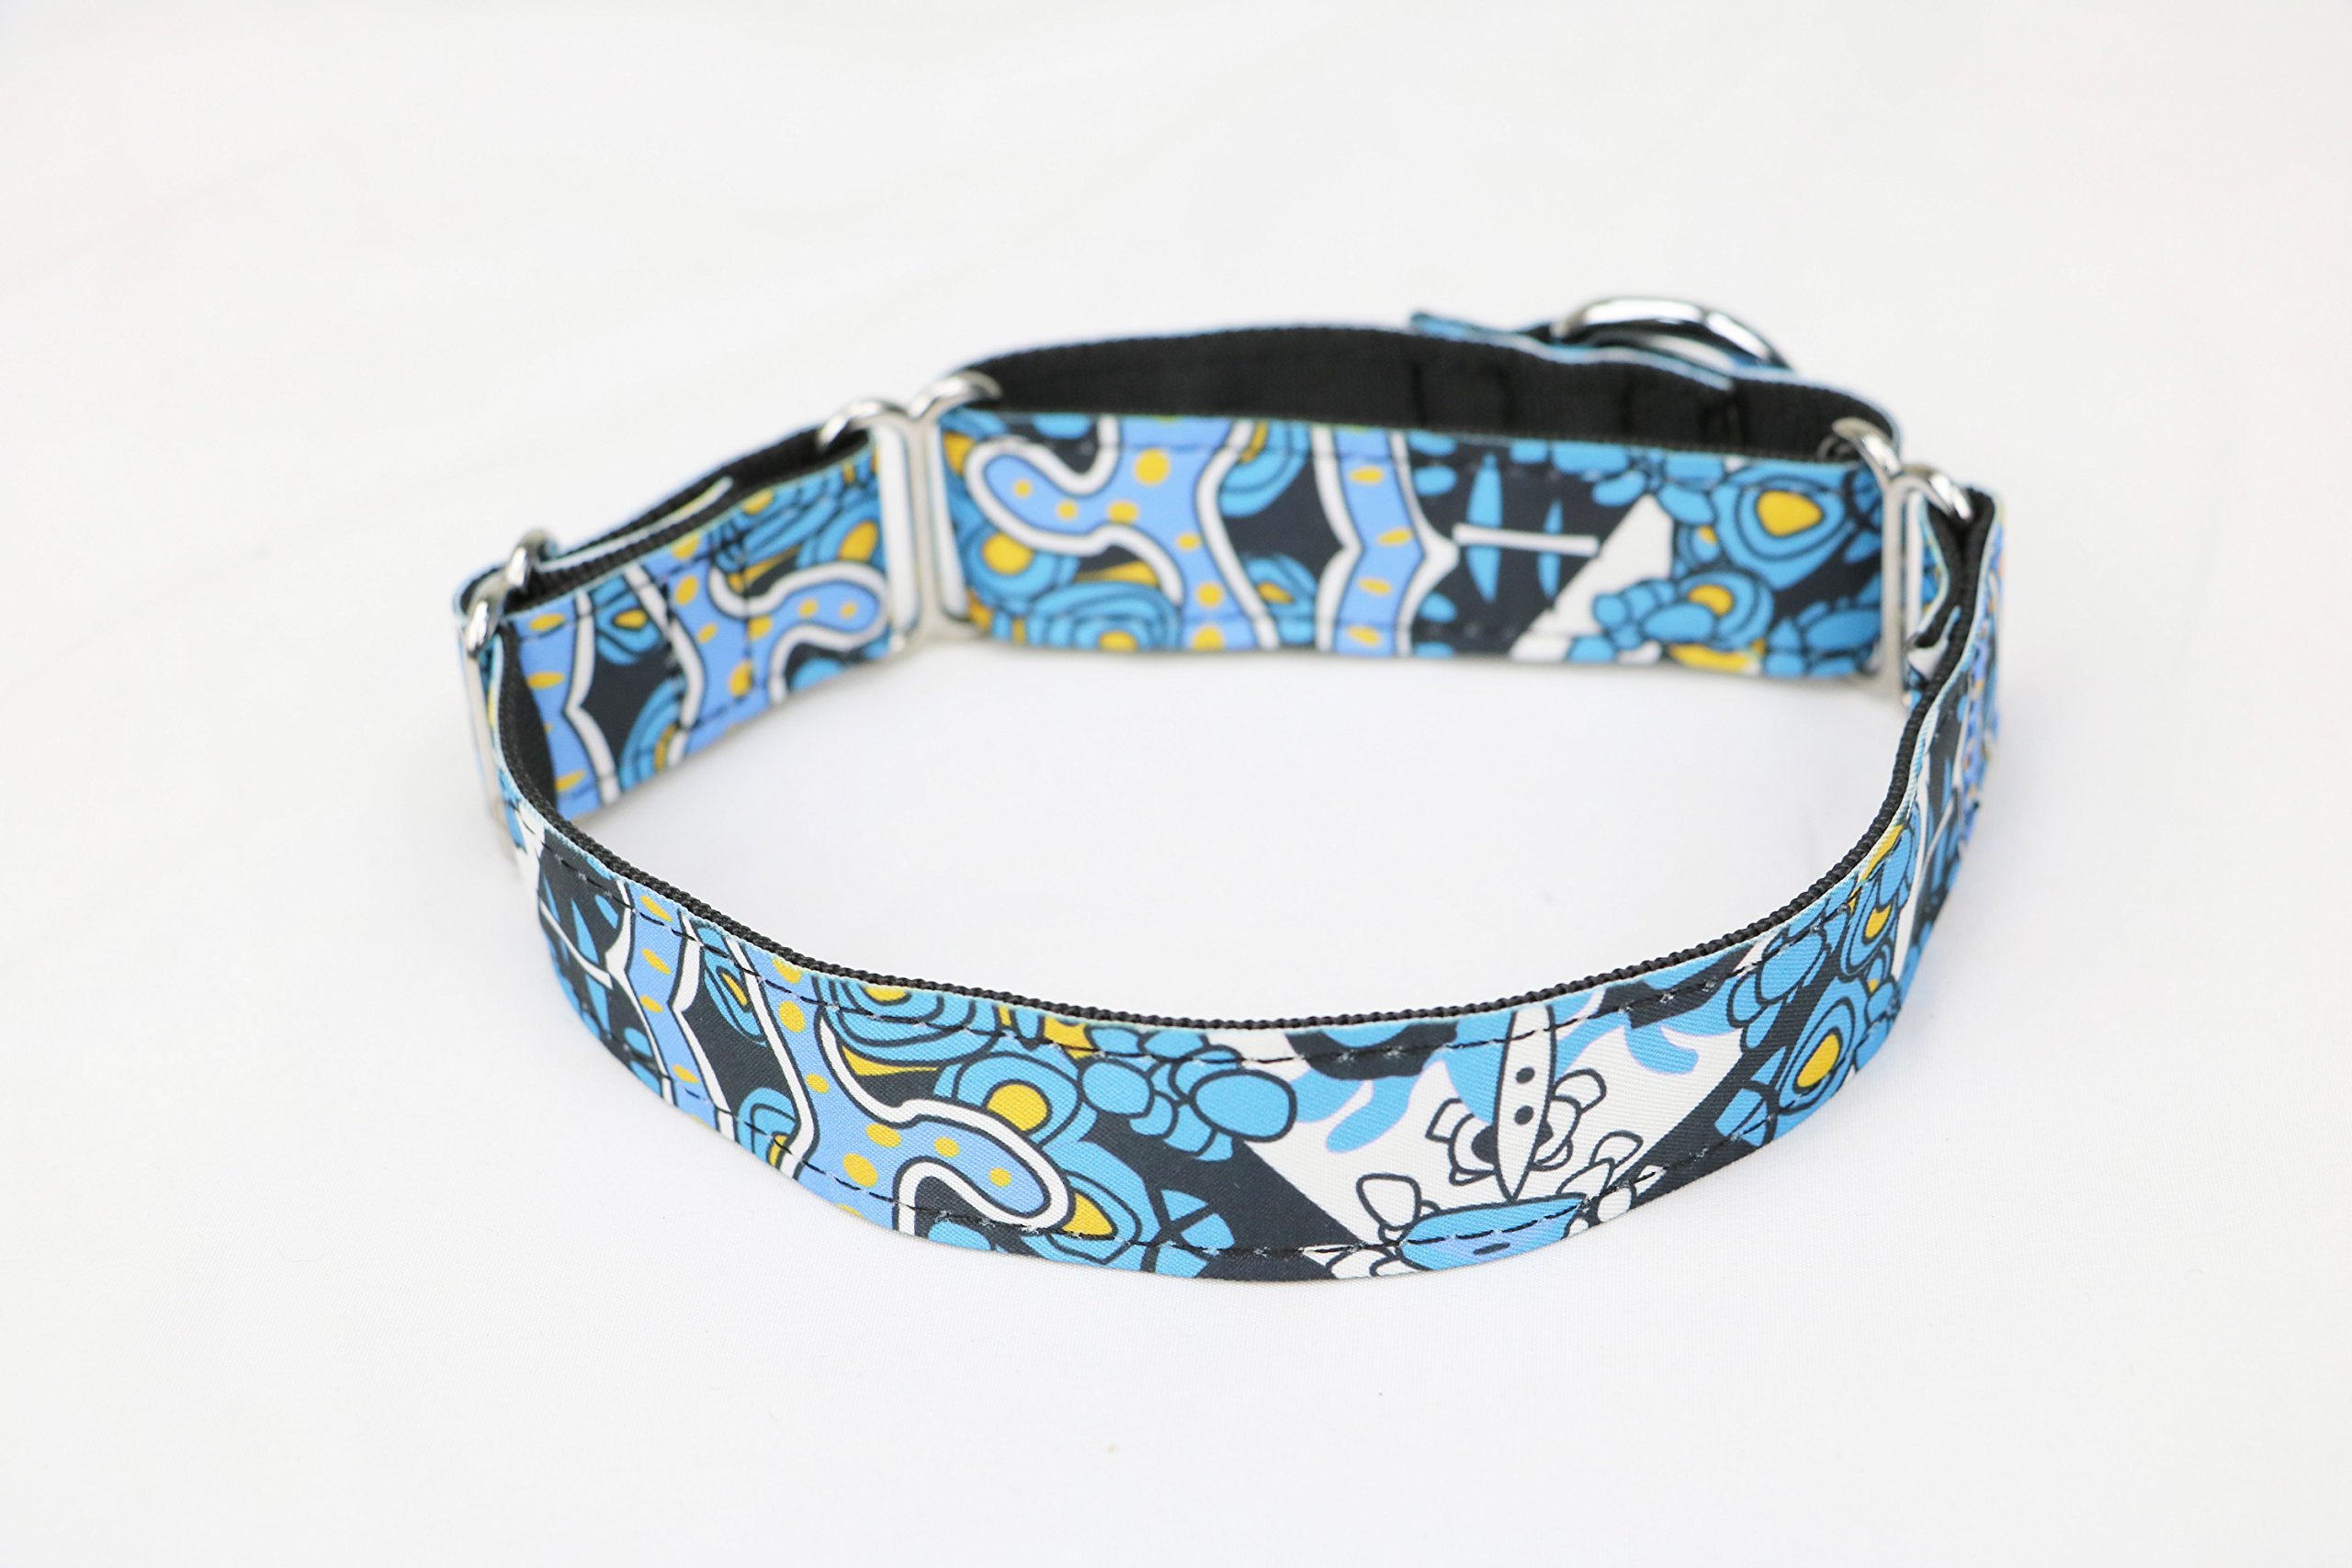 BUNICAD Handmade Personalized Fabric Super Strong Durable Reef Dog Collar Martingale Collar for Large dog (L: Width 3.8cm fits neck size 35cm ~ 50cm)